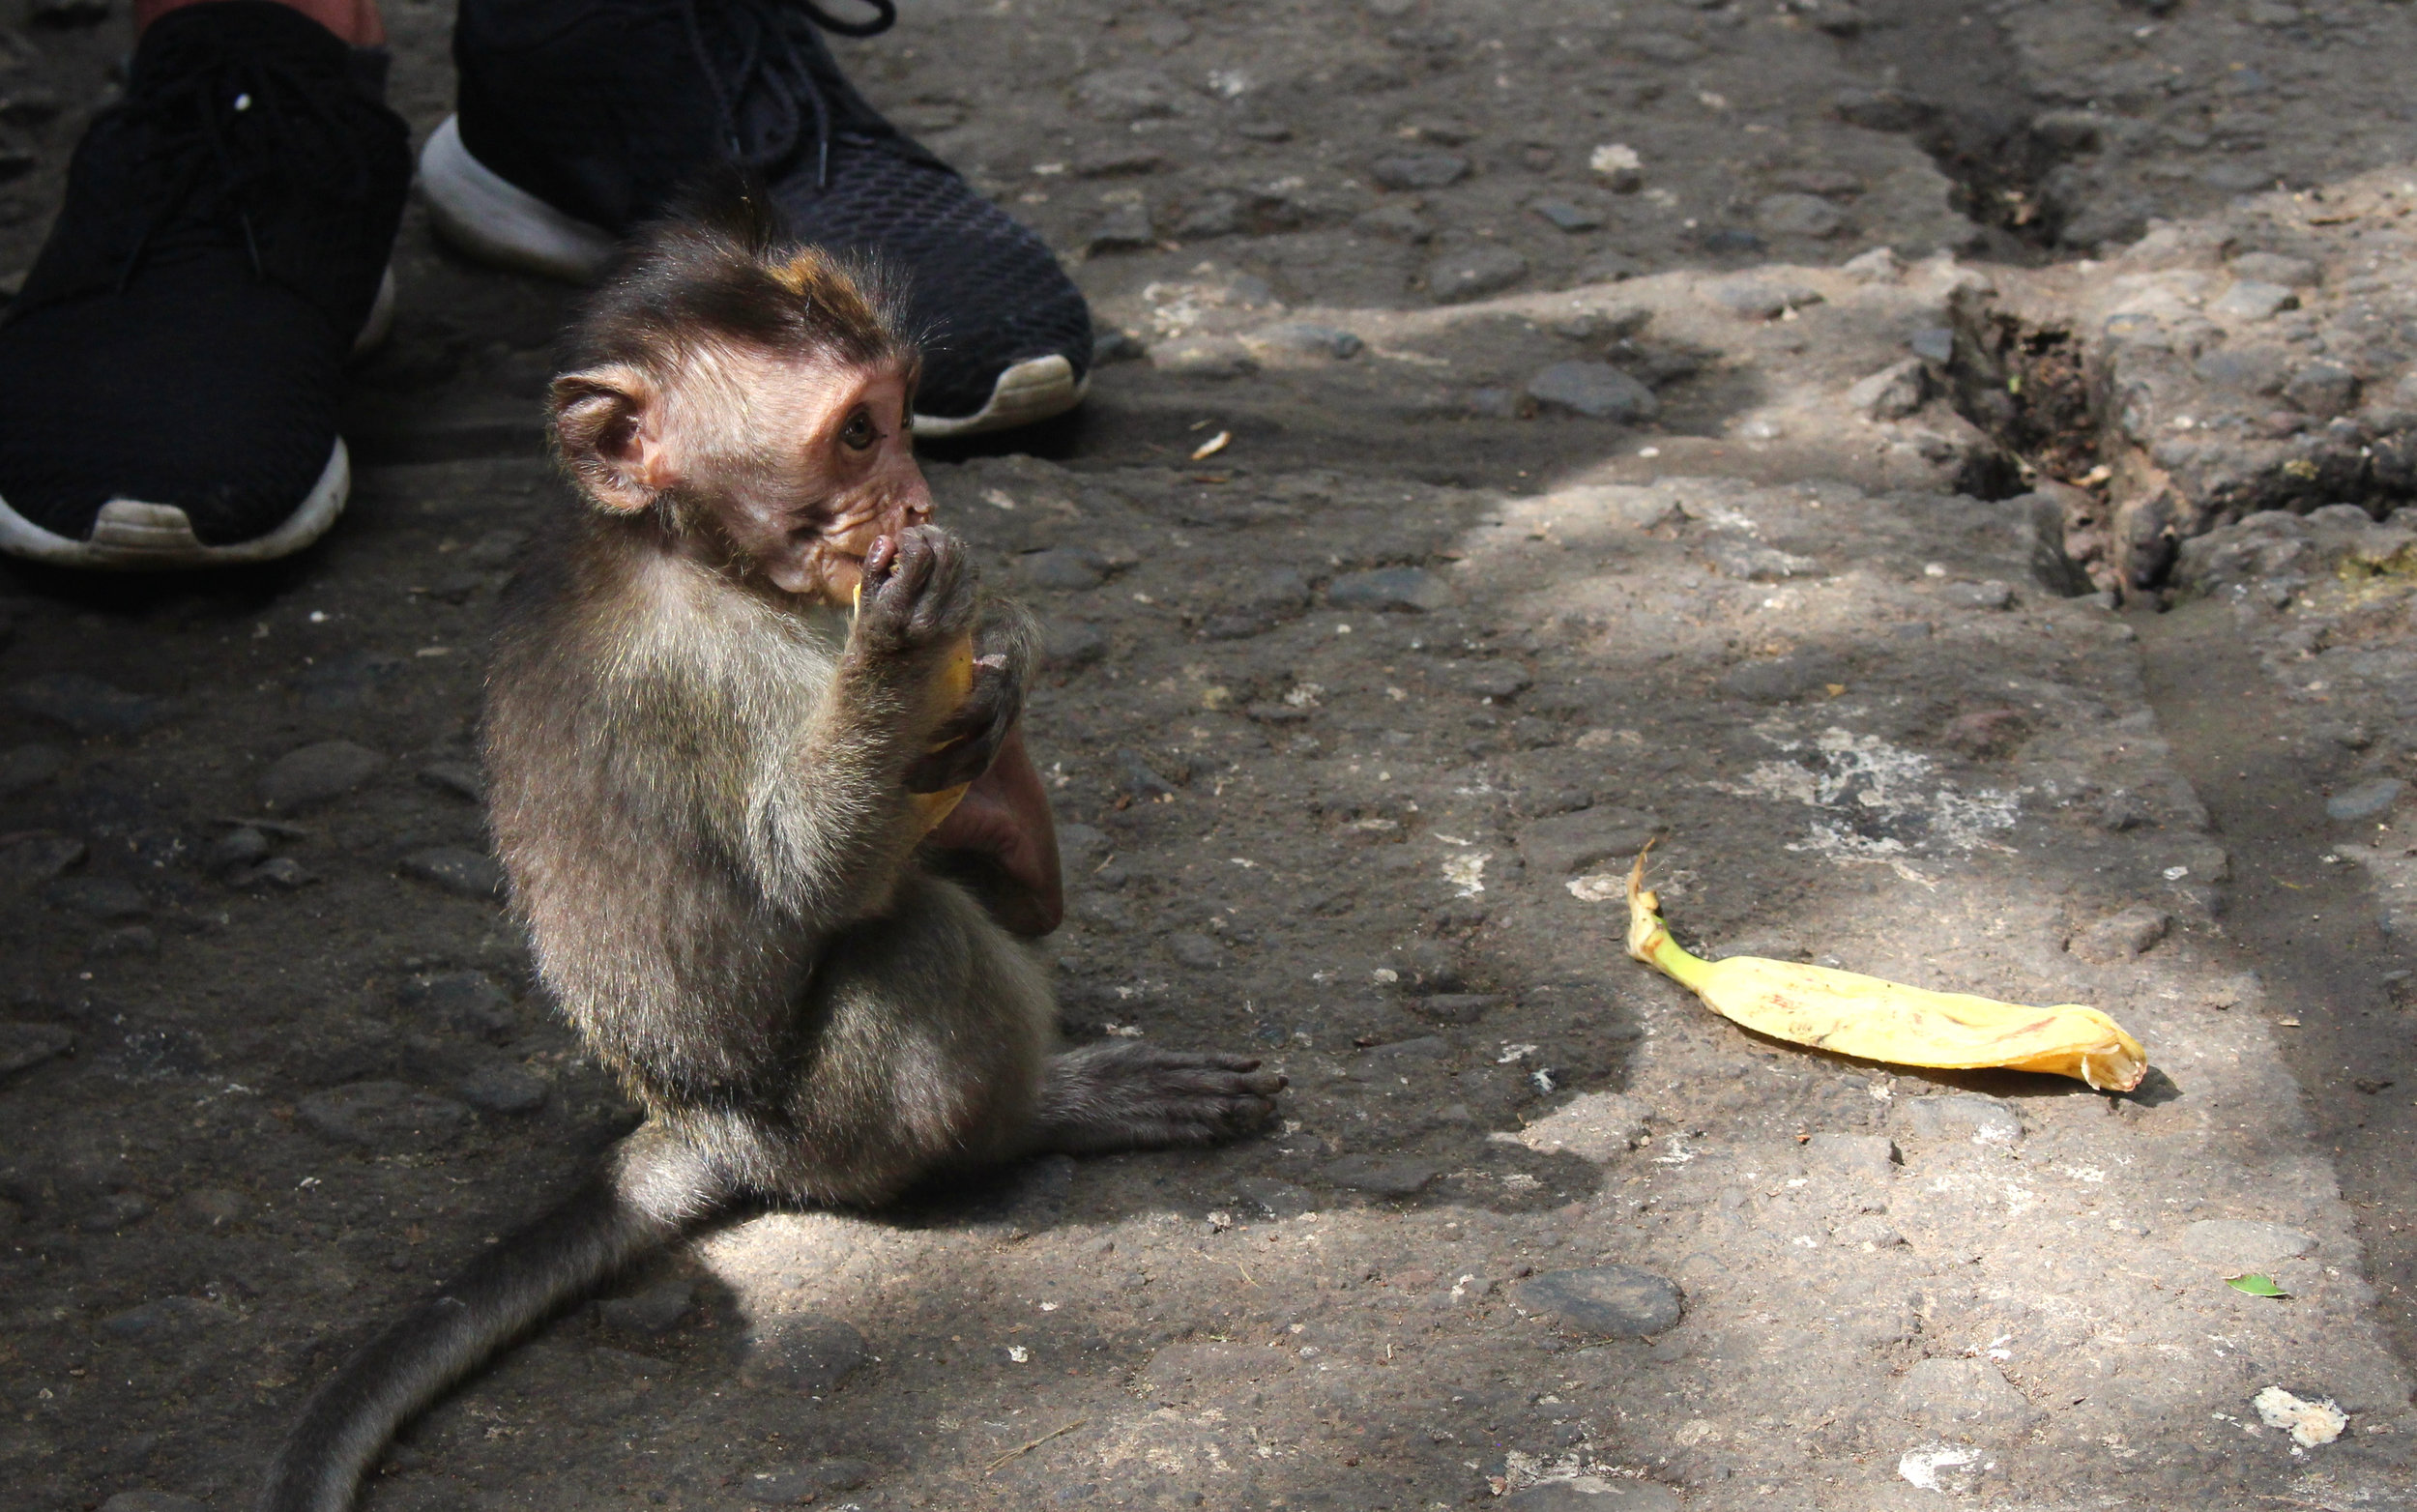 Monkey friends - this guy was in the famed monkey forest in Ubud.